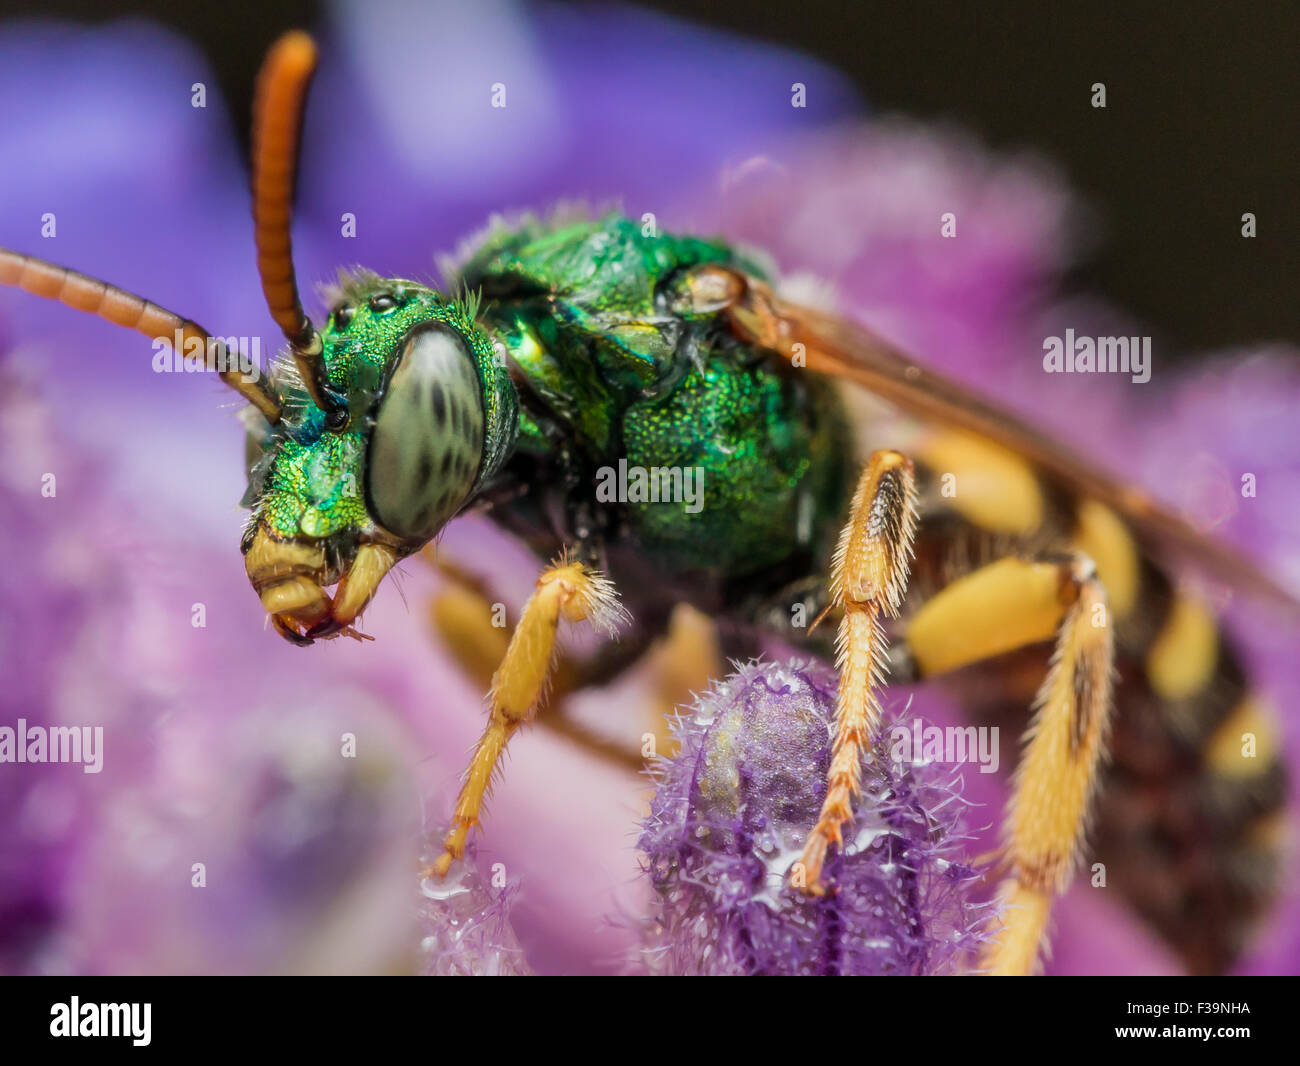 Metallic Green Sweat Bee on Purple Flower - Stock Image